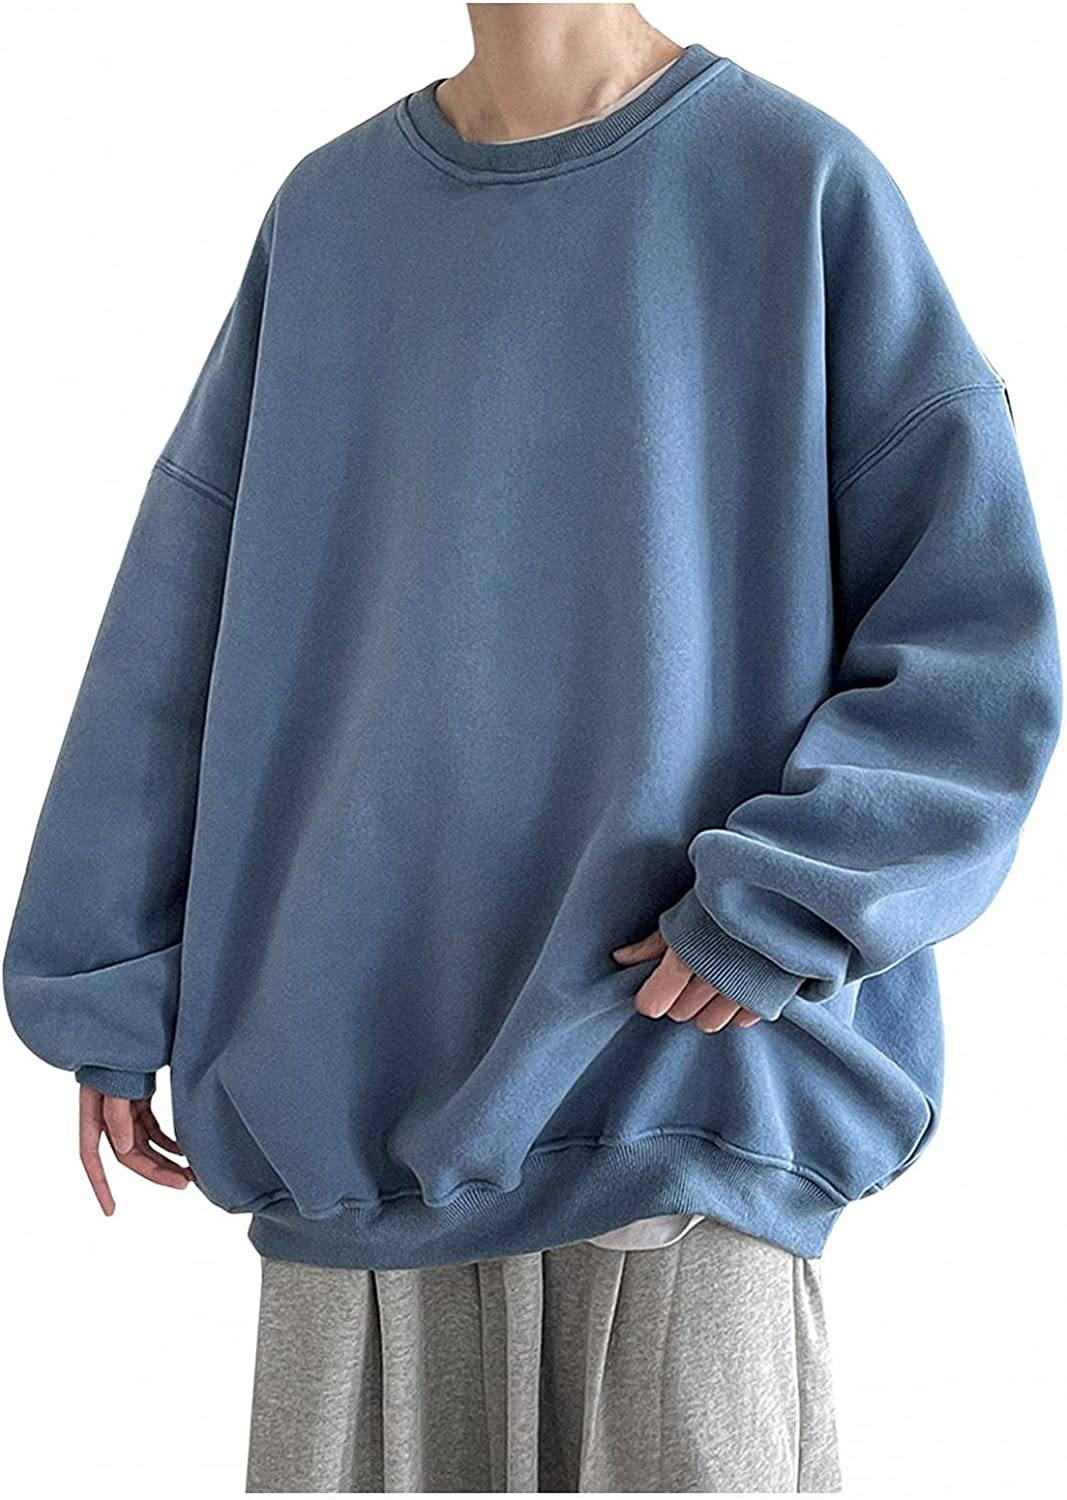 WUAI-Men Crewneck Sweatshirt Fashion Hipster Workout Loose Oversized Pullover Sweaters Thermal Tops Big and Tall